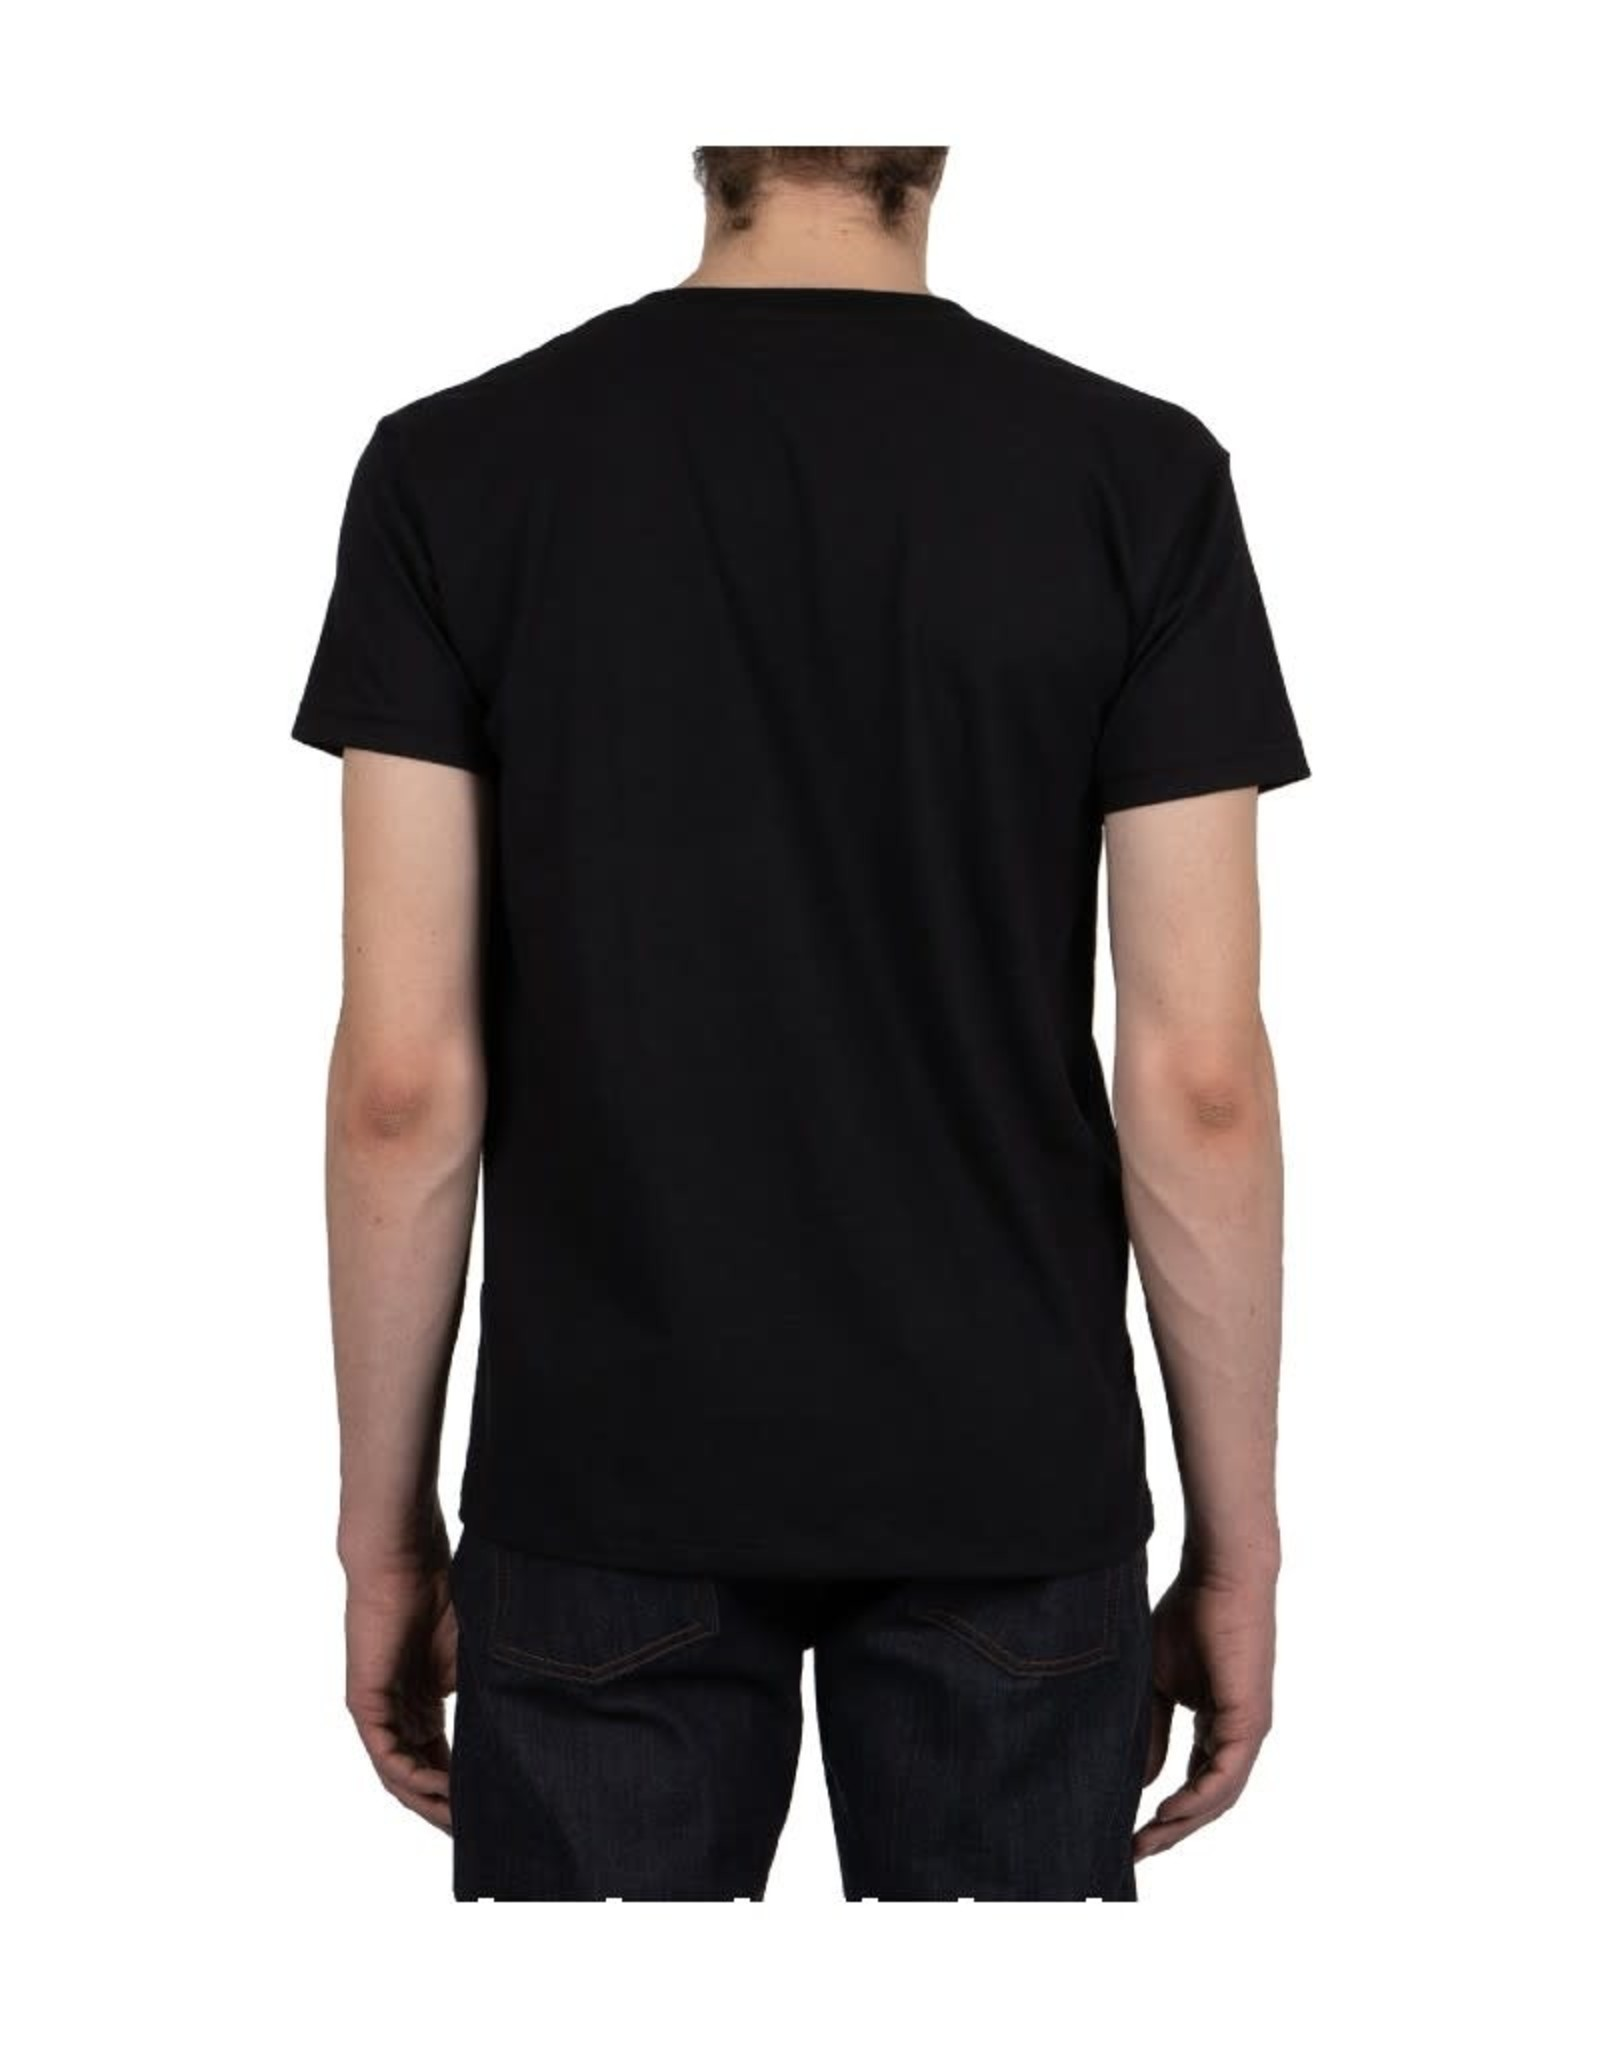 Naked and Famous Pocket Tee PE21 Naked & Famous Black Japan Cranes